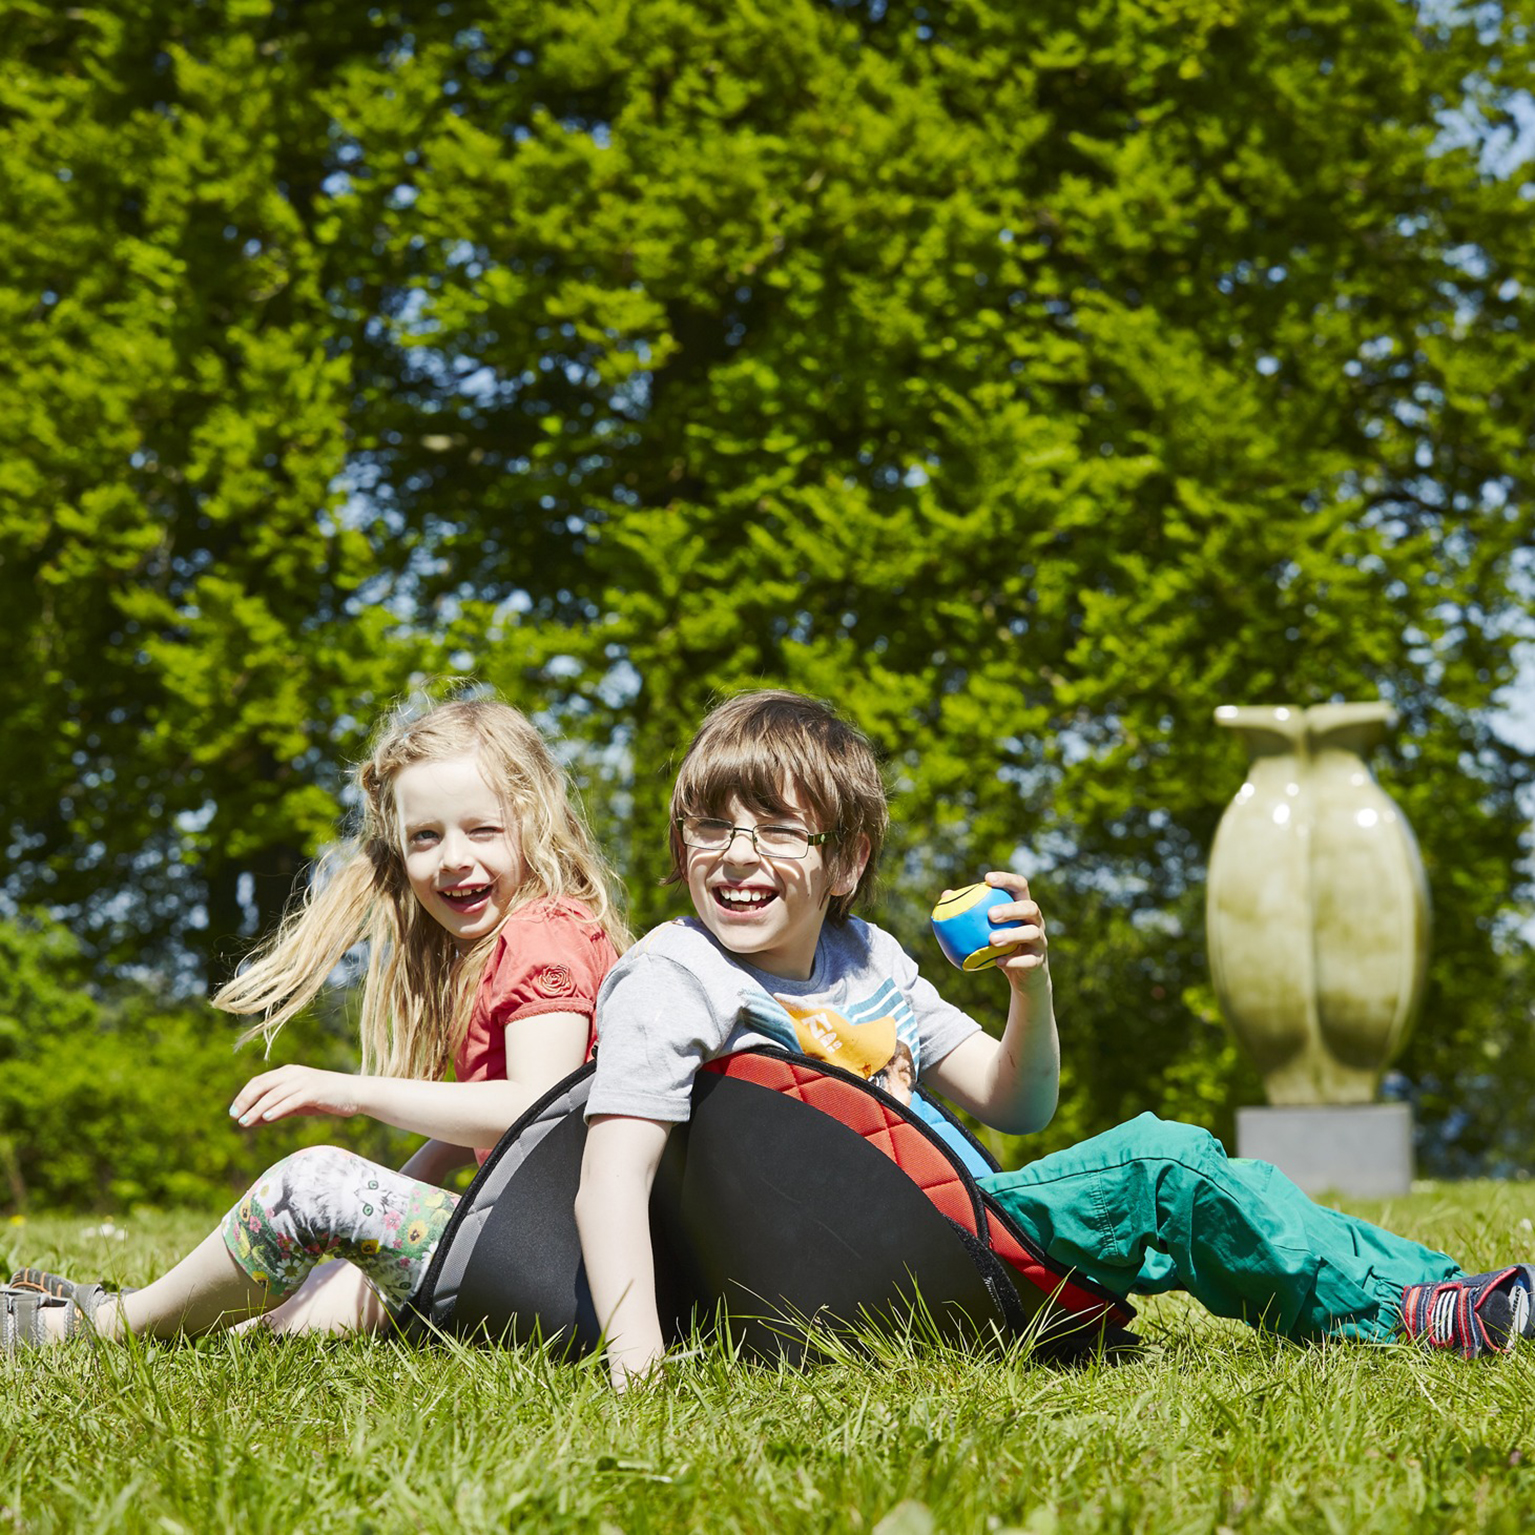 R82 launches Scallop seat for disabled children through new webshop